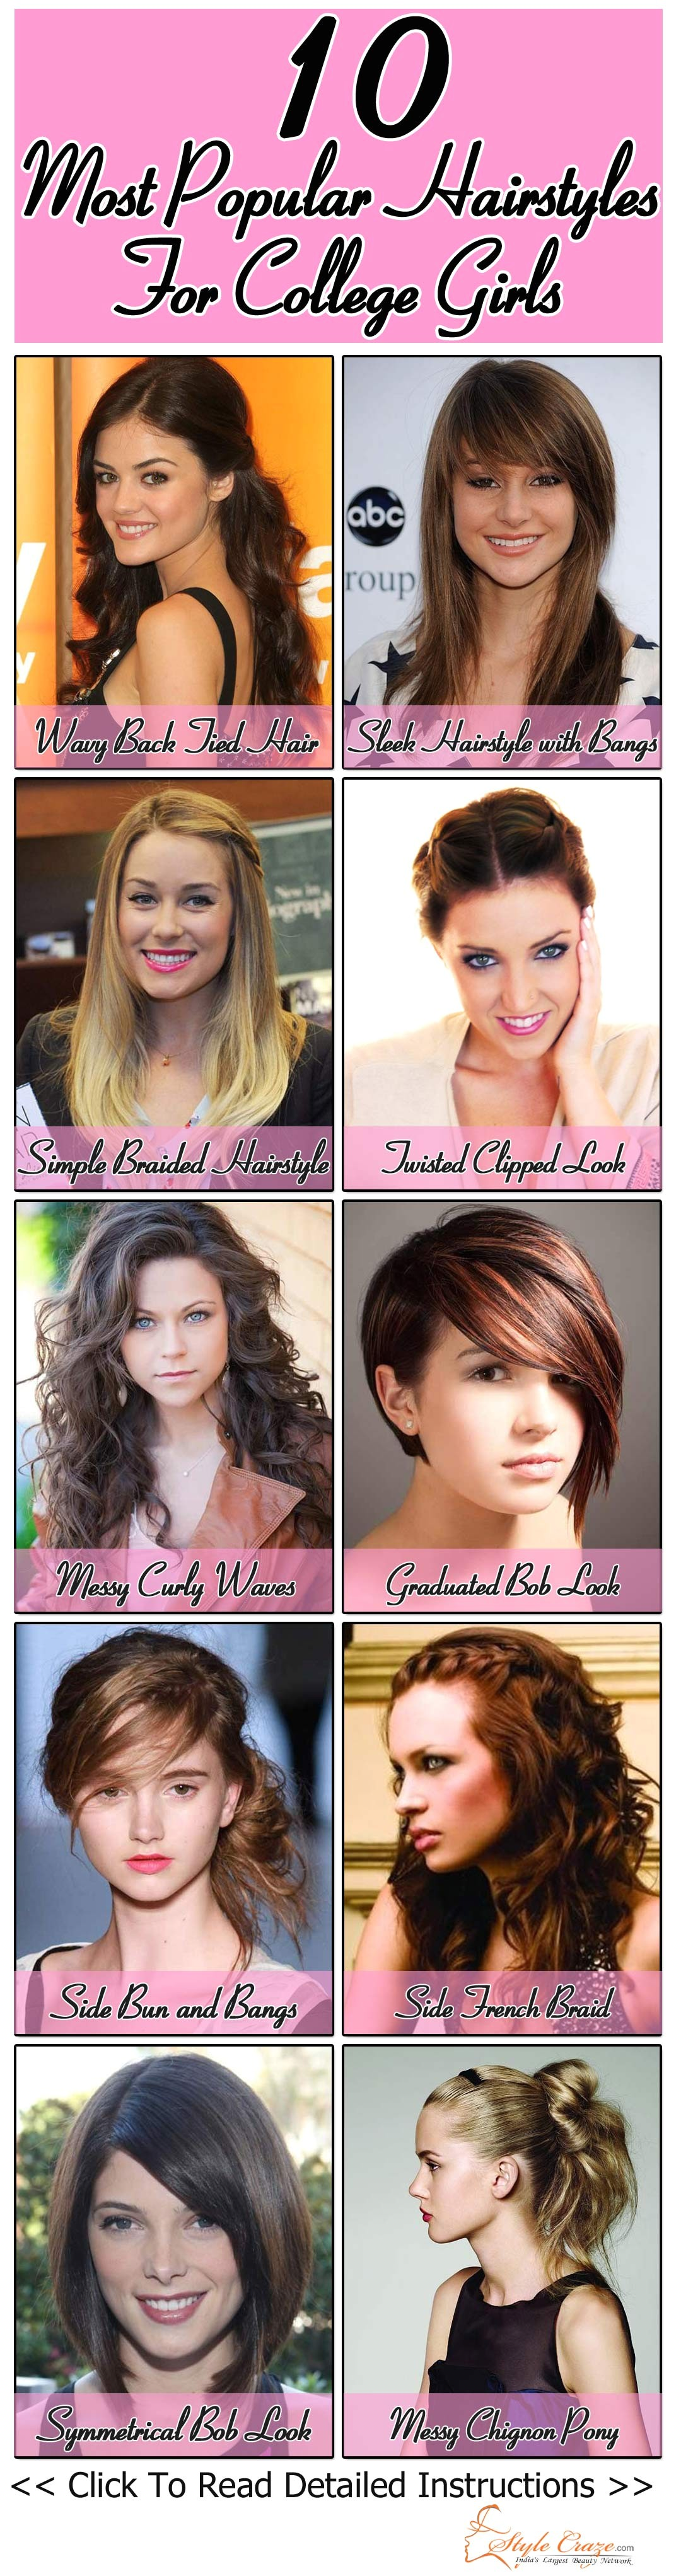 10 Most Popular Hairstyles For College Girls… Some can be used for natural curls